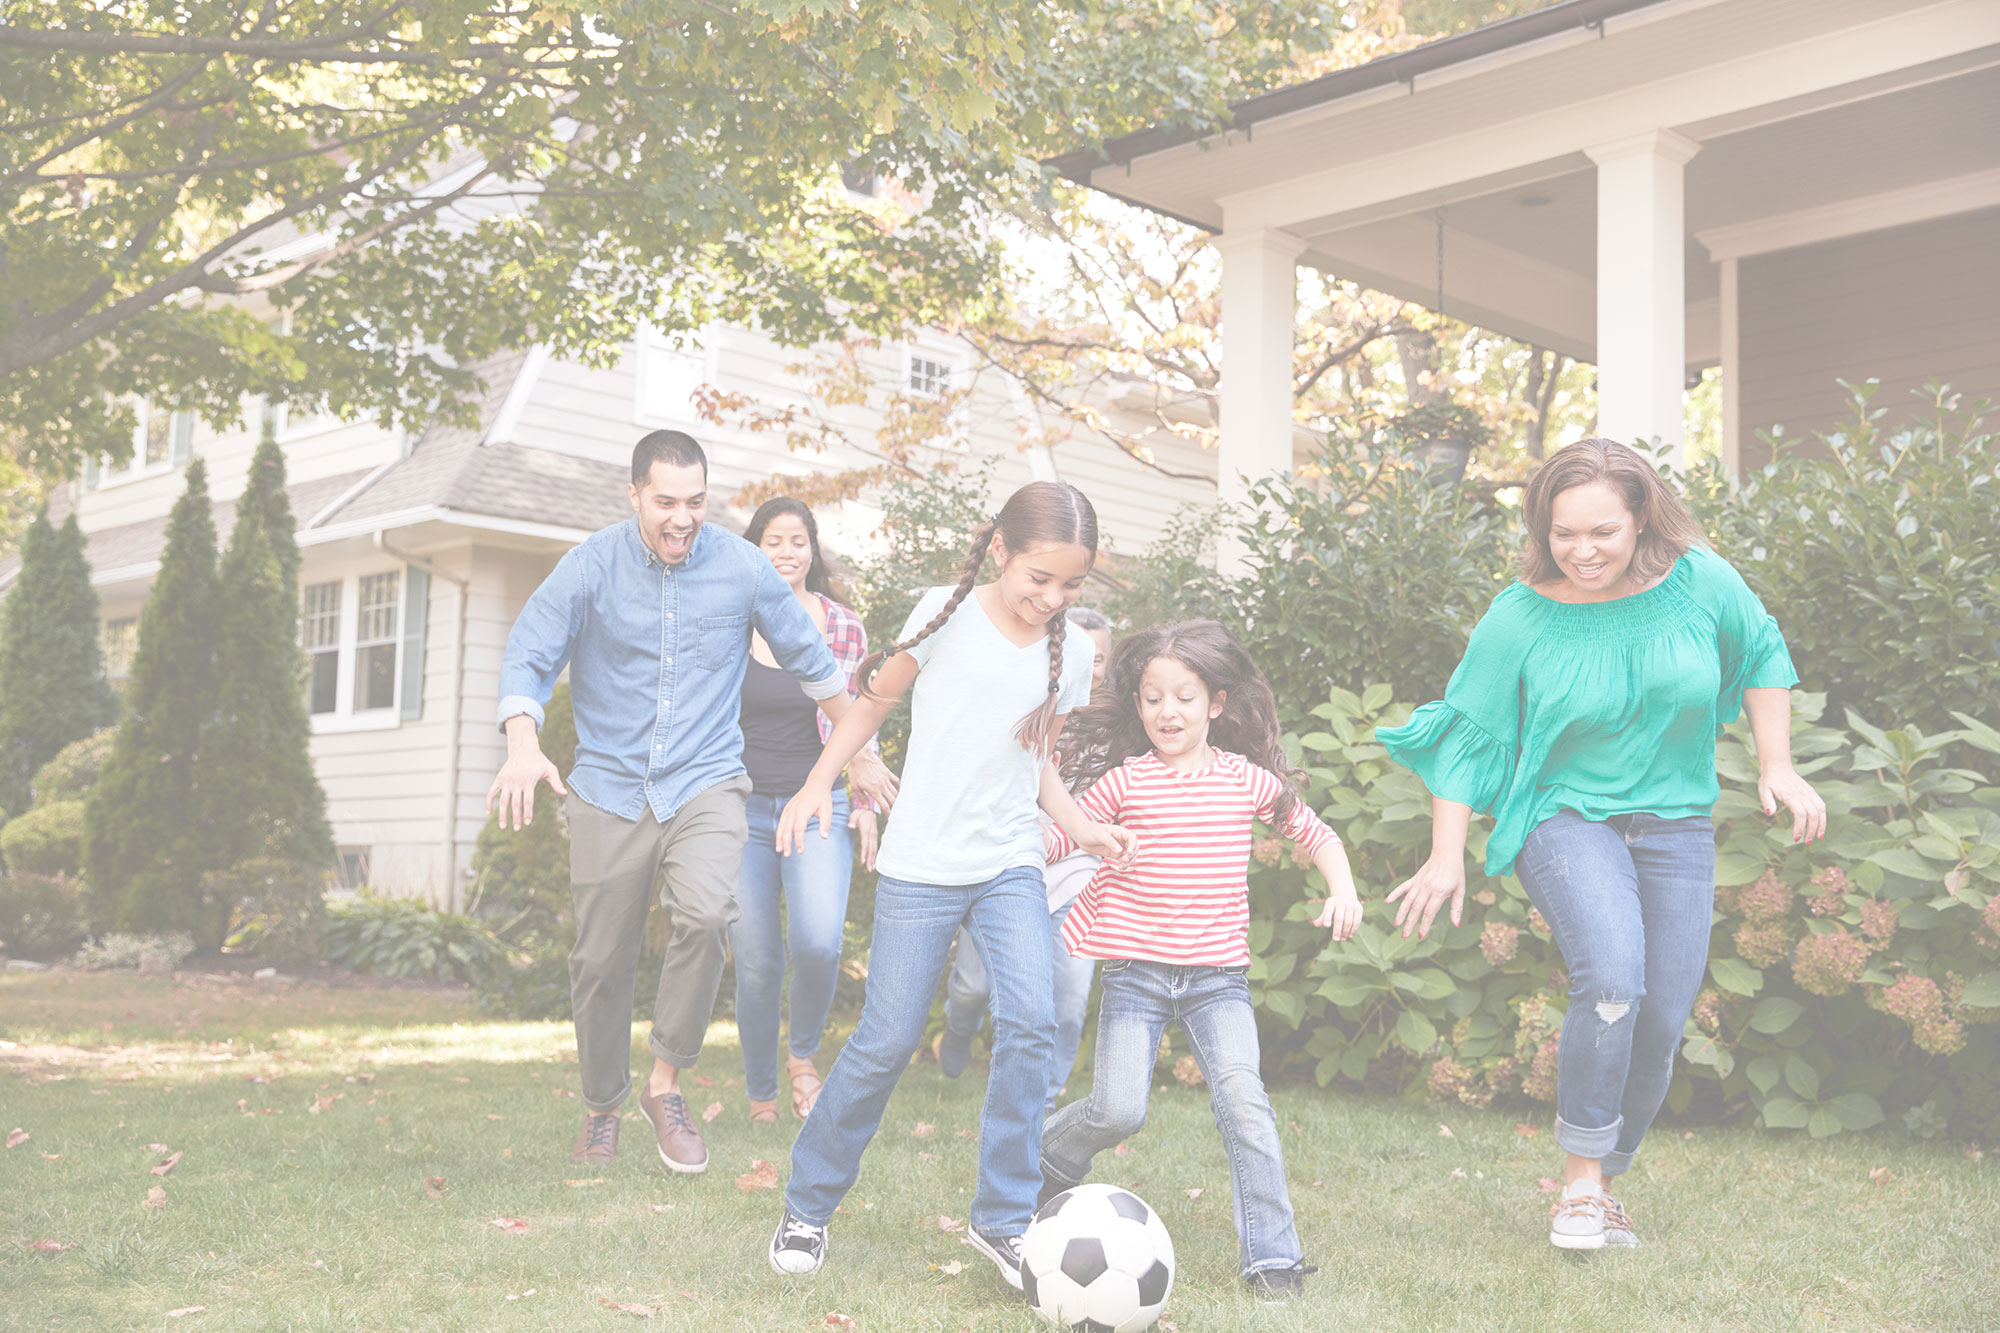 Multi-generational family playing soccer in their front yard